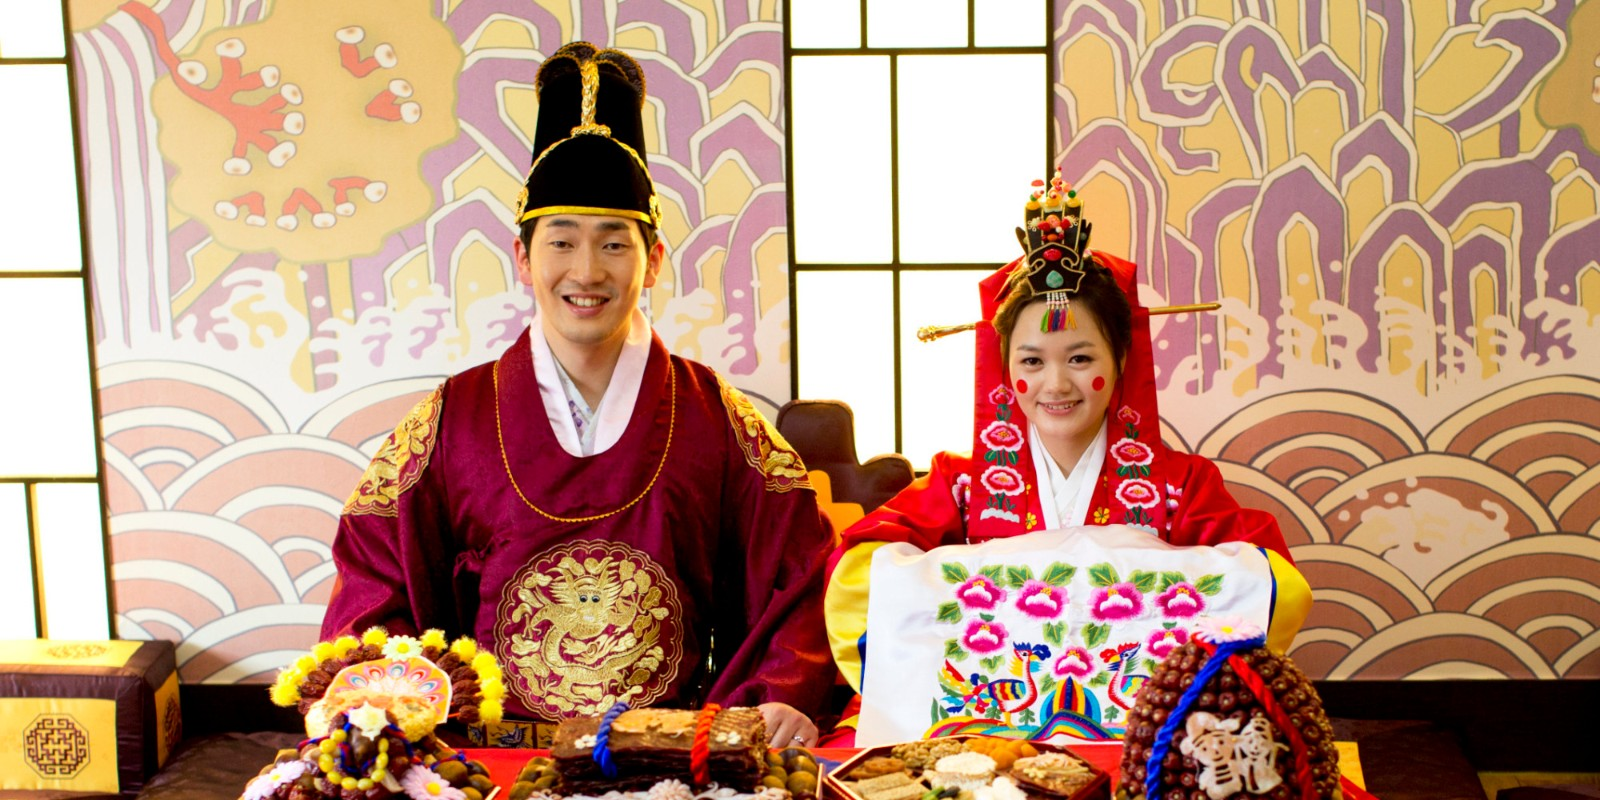 people in hong kong emphasize wedding customs and traditions Old established people in hong kong emphasize wedding customs and traditions sources arms.